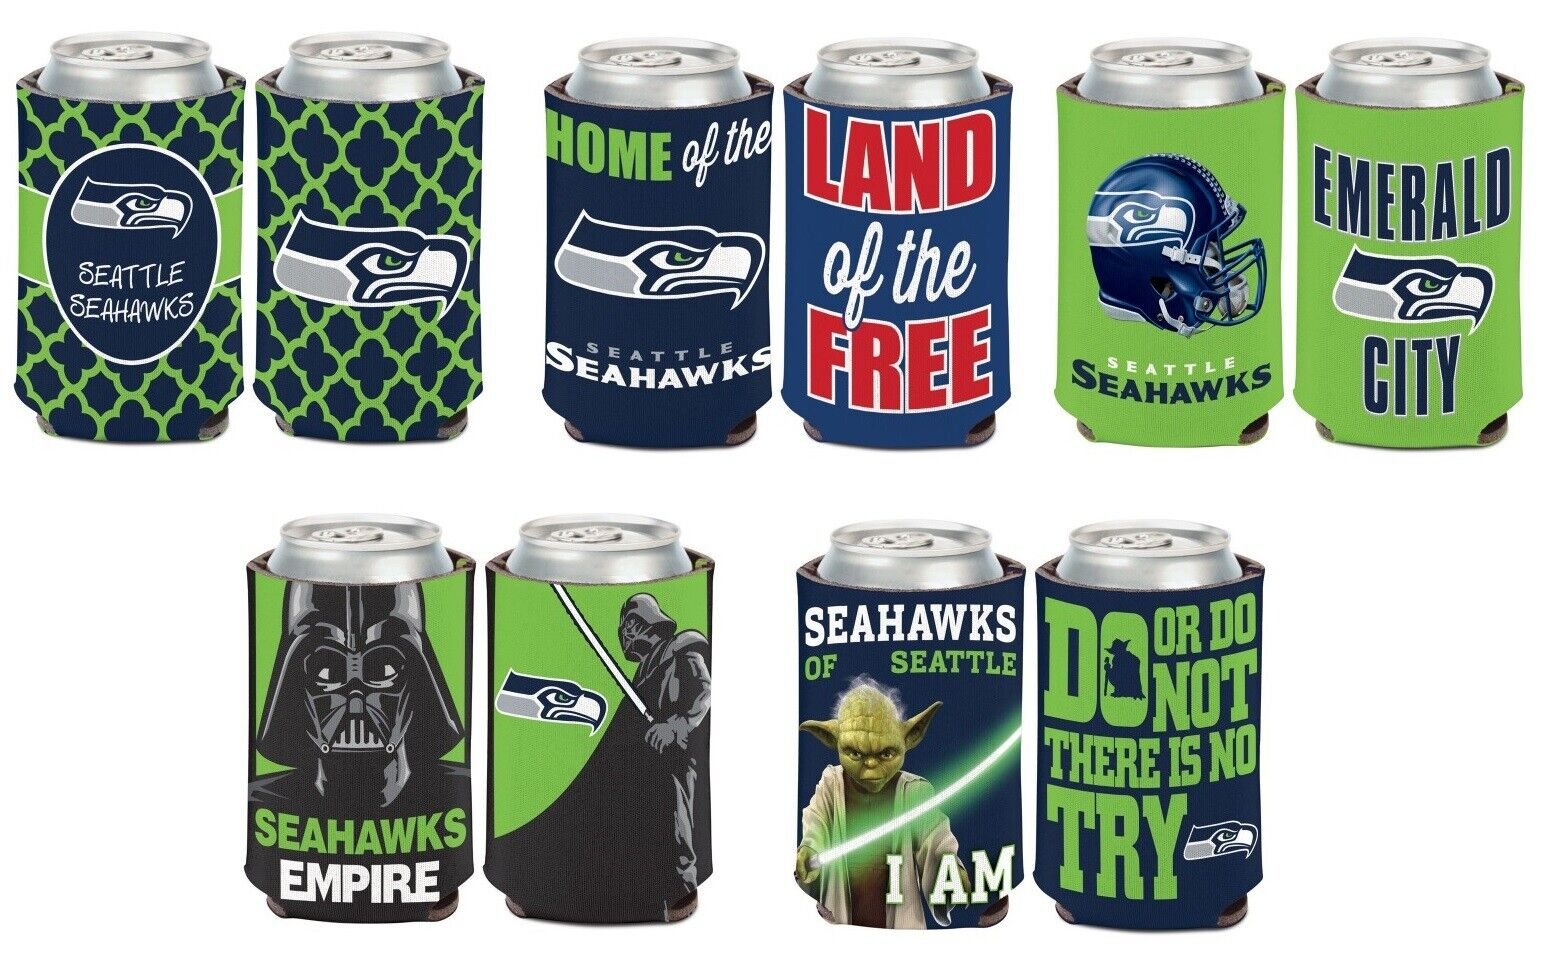 Seattle Seahawks Vintage Tin Coolers NFL Football Can Cooler